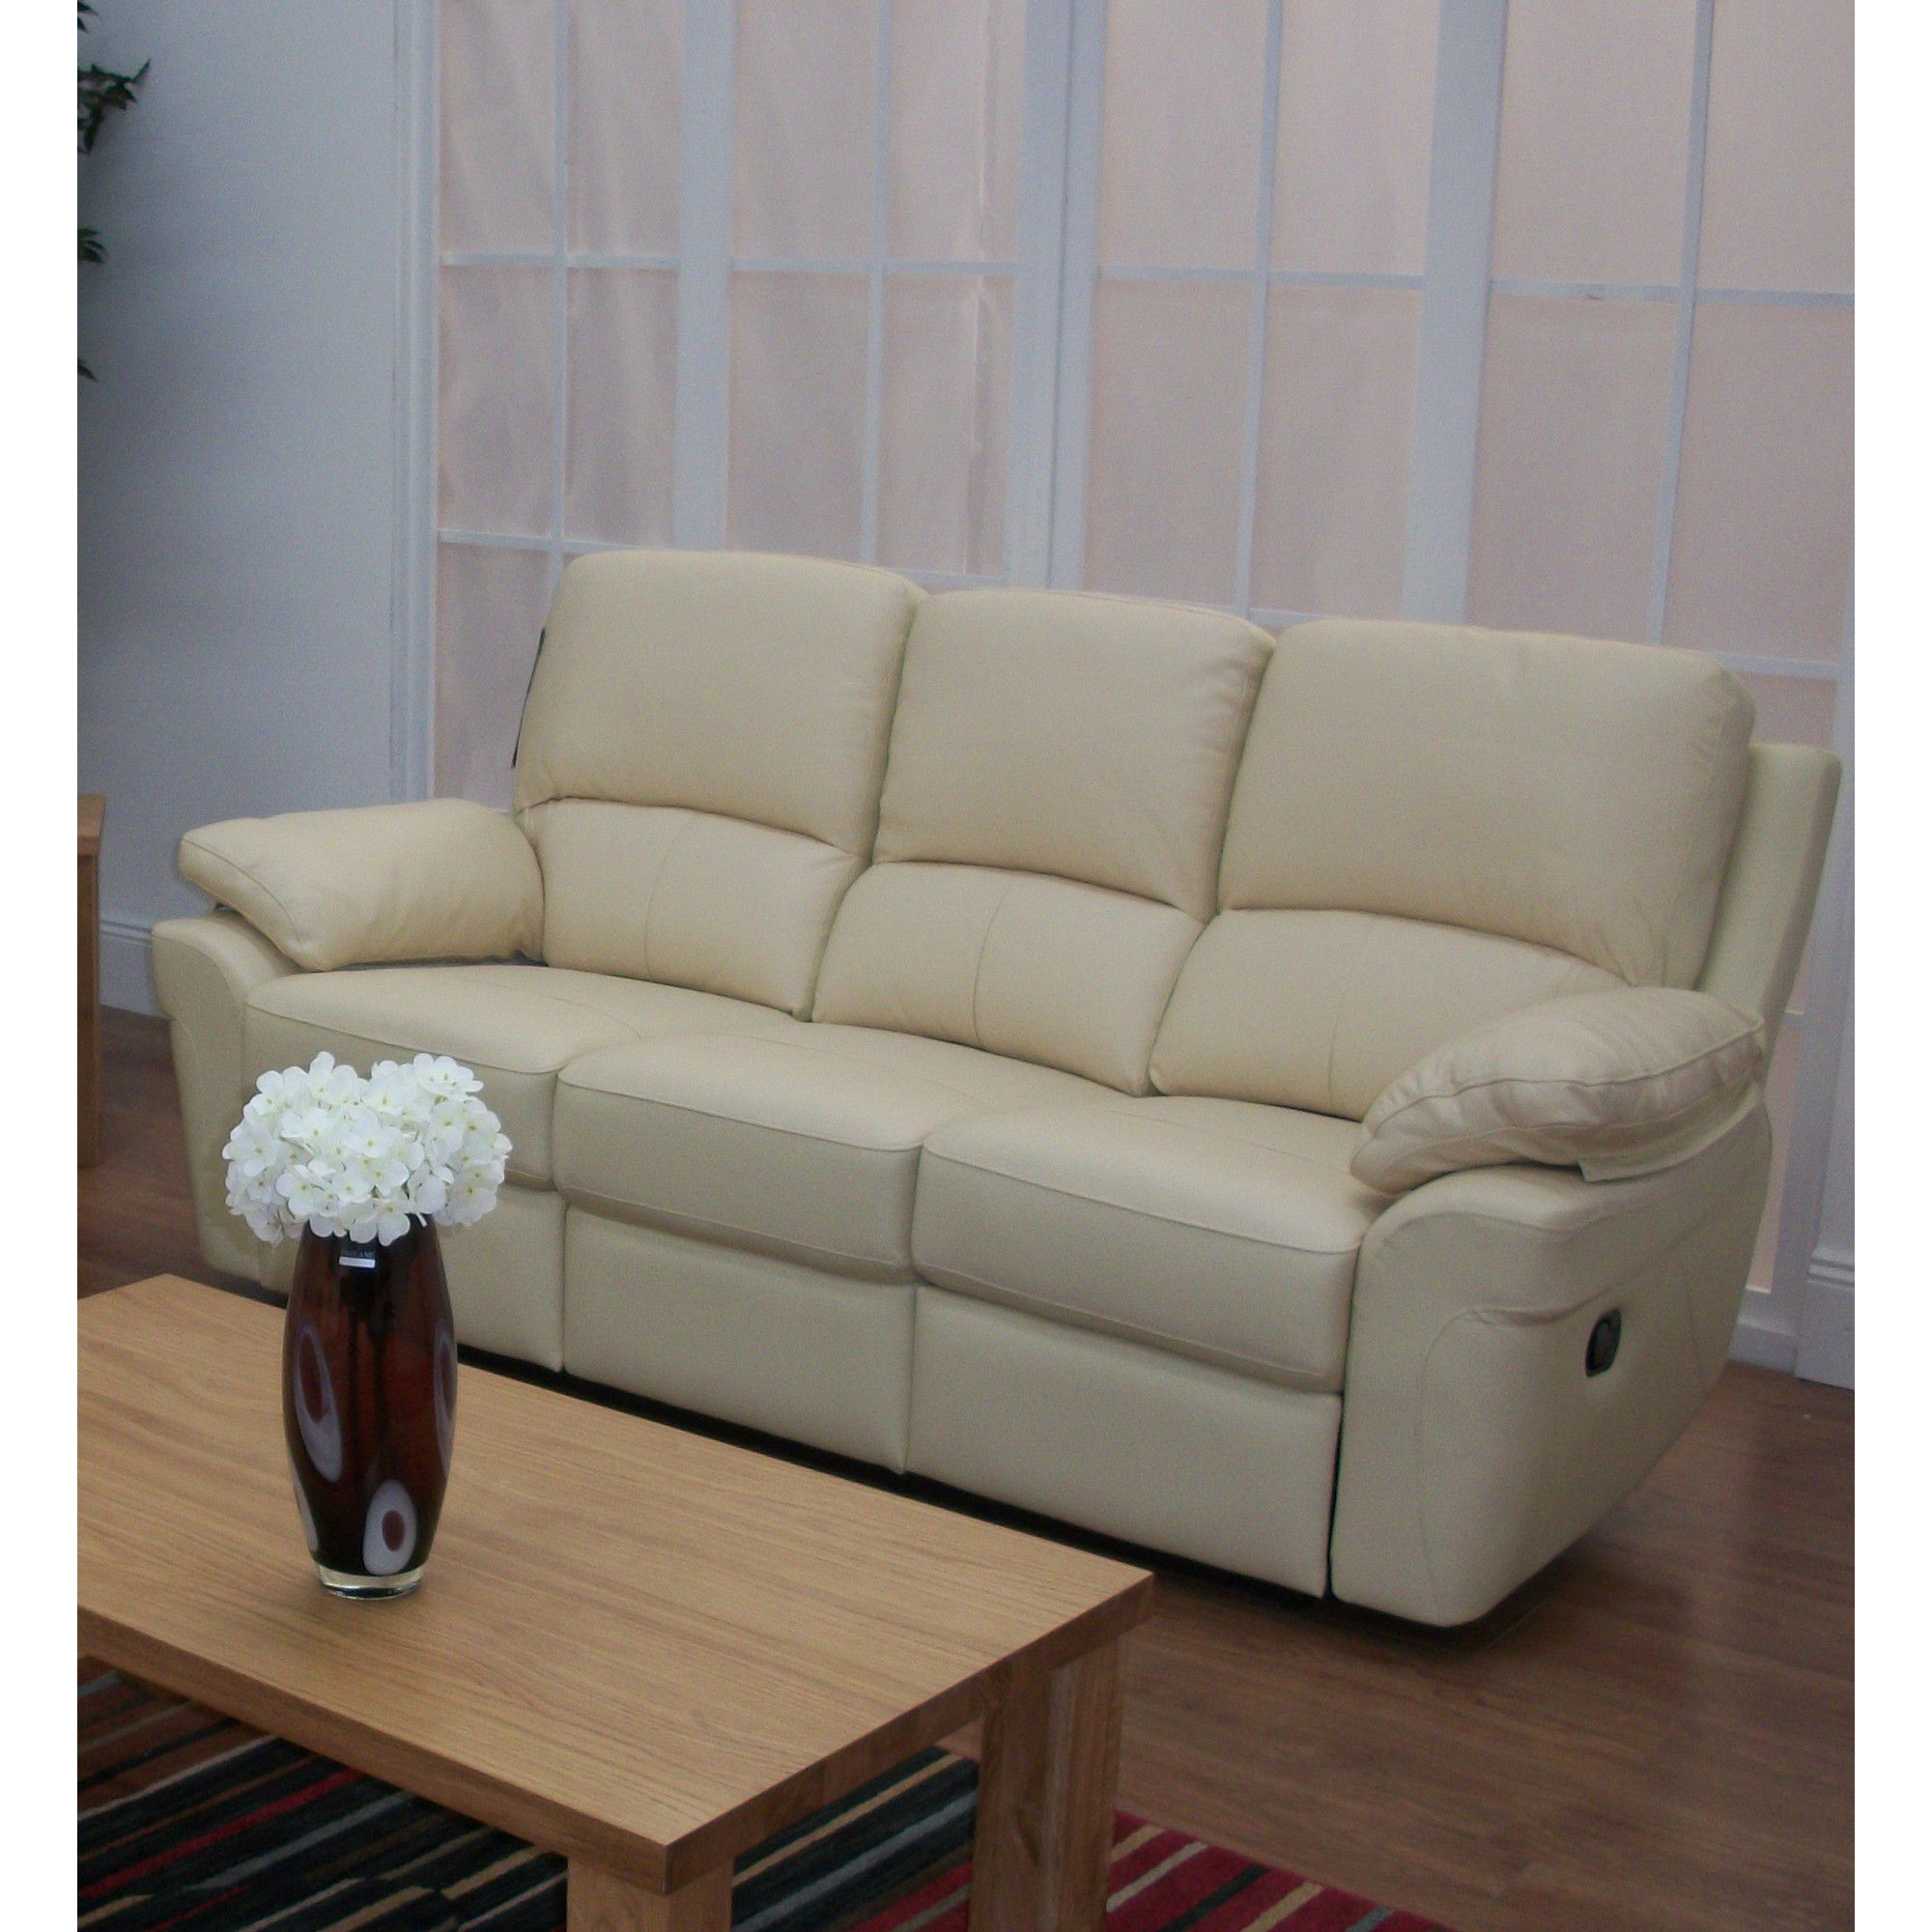 Furniture Link Monzano Three Fixed Seat Sofa in Ivory - Ivory at Tesco Direct